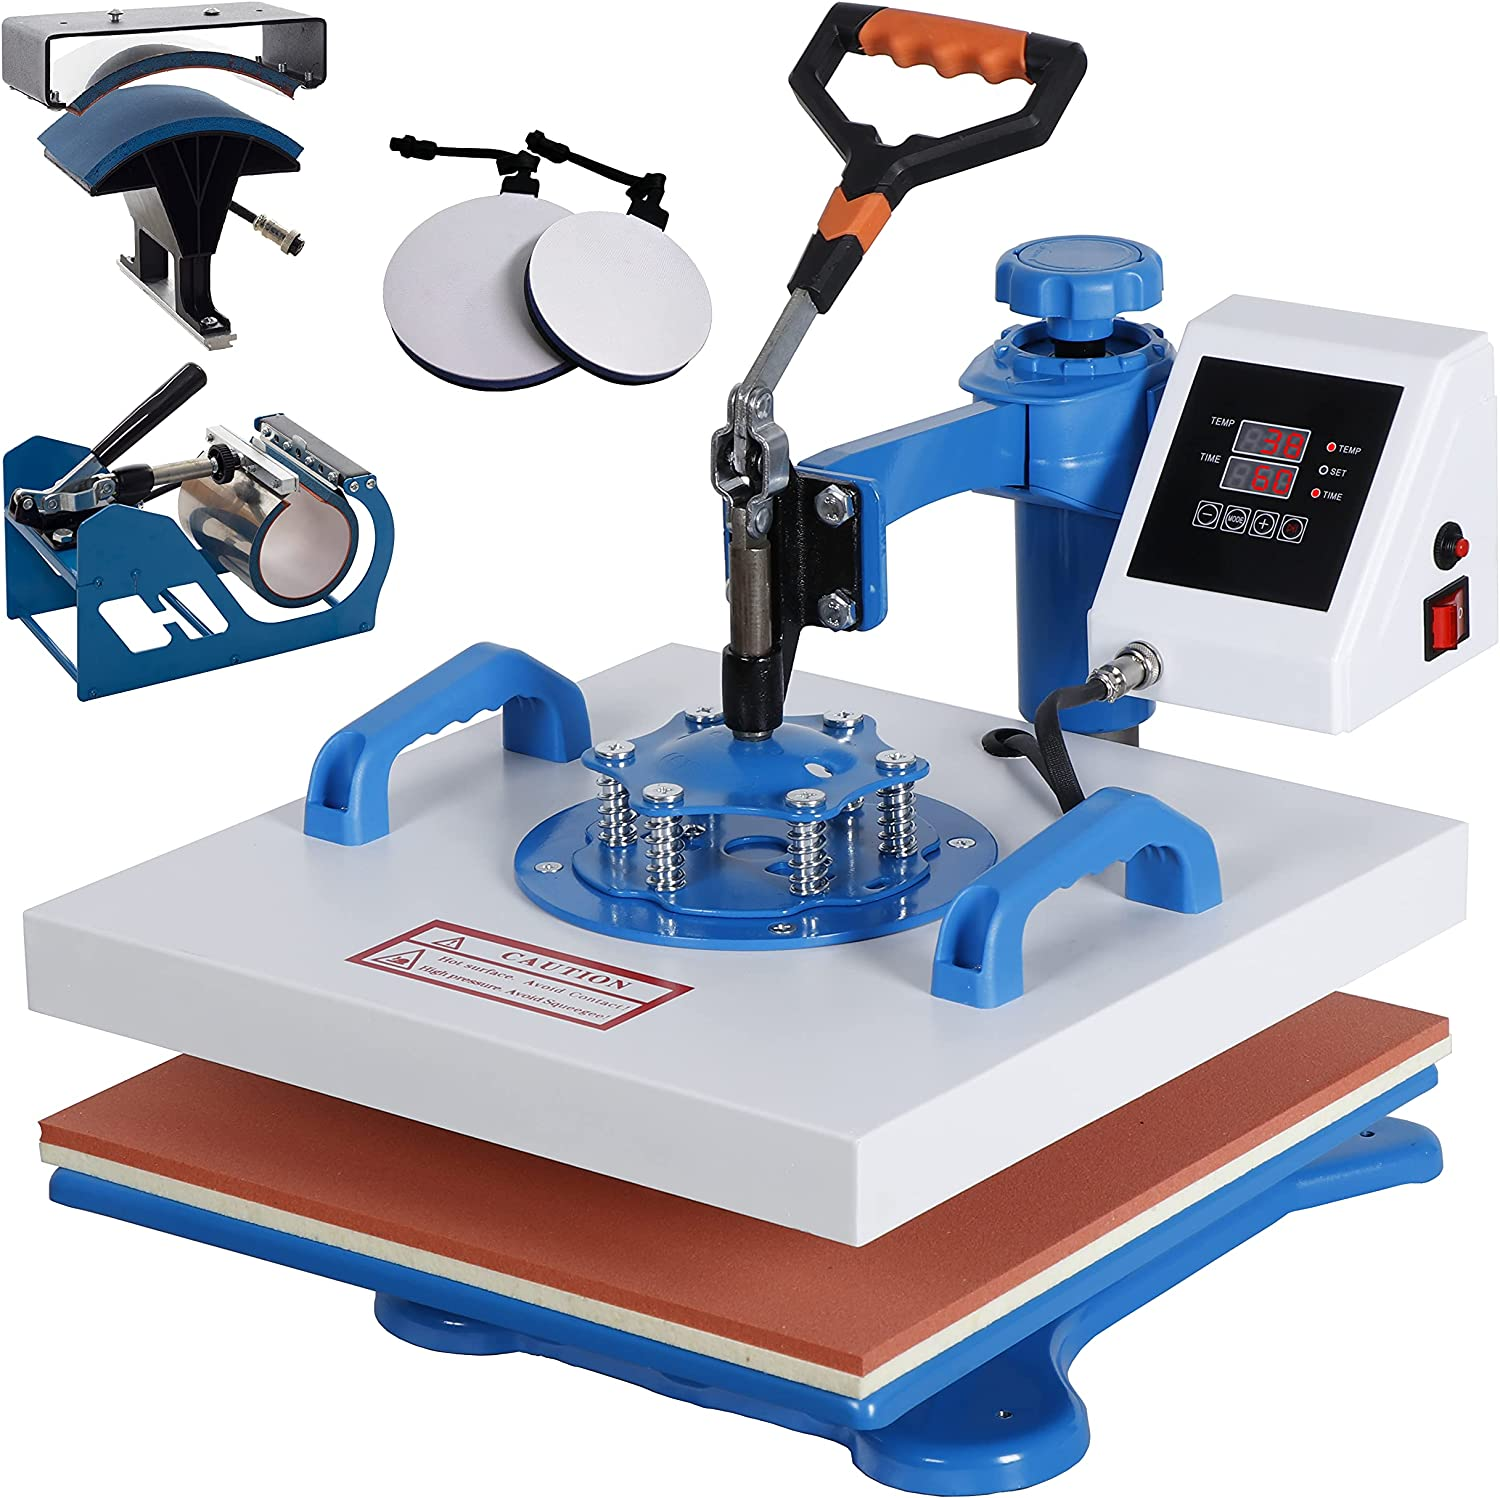 VLVY Heat Press Machine15x15 Inch 5 in Max 63% OFF 1 Printer Animer and price revision Combo Transfer